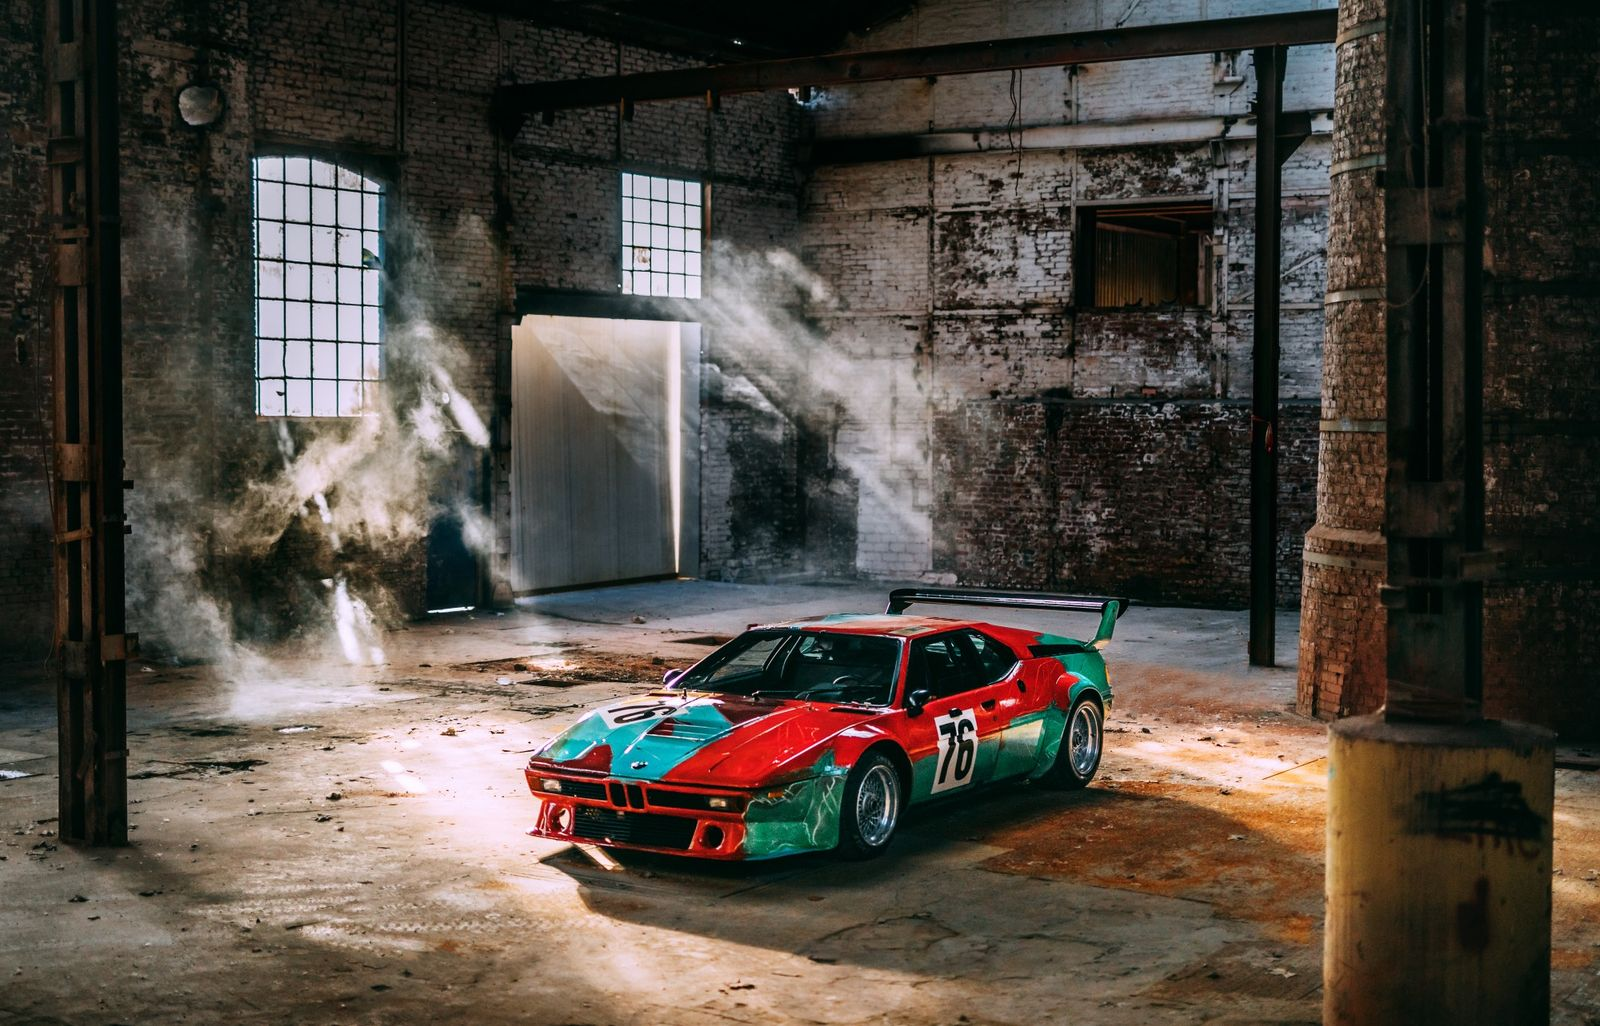 Photo shoot celebrating a special birthday: The BMW M1 Art Car by Andy Warhol